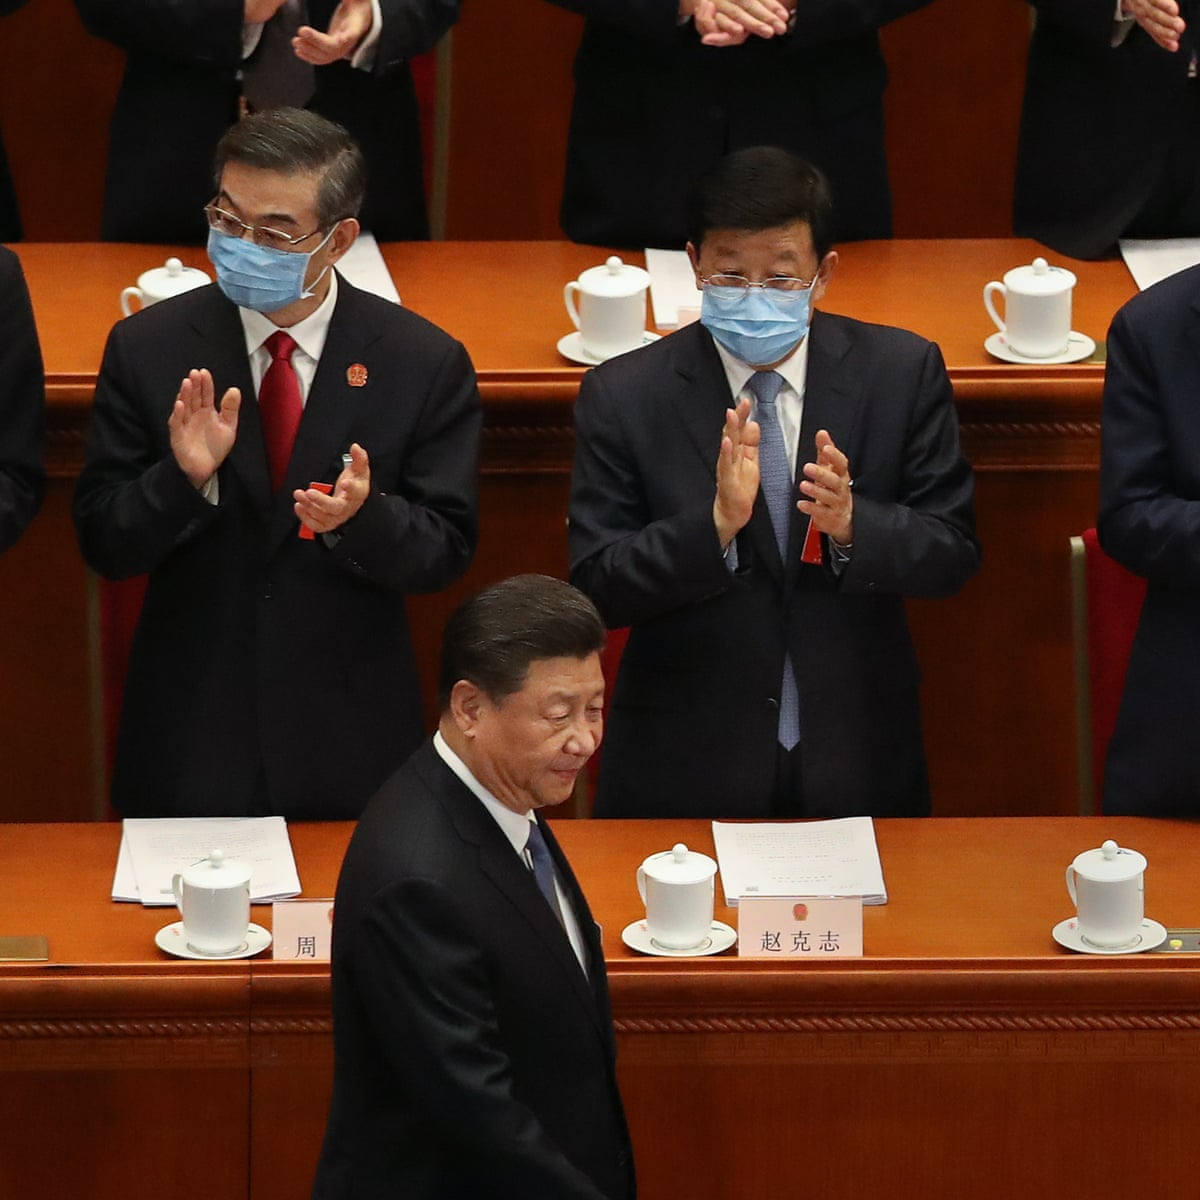 China S Xi Jinping Facing Widespread Opposition In His Own Party Insider Claims China The Guardian